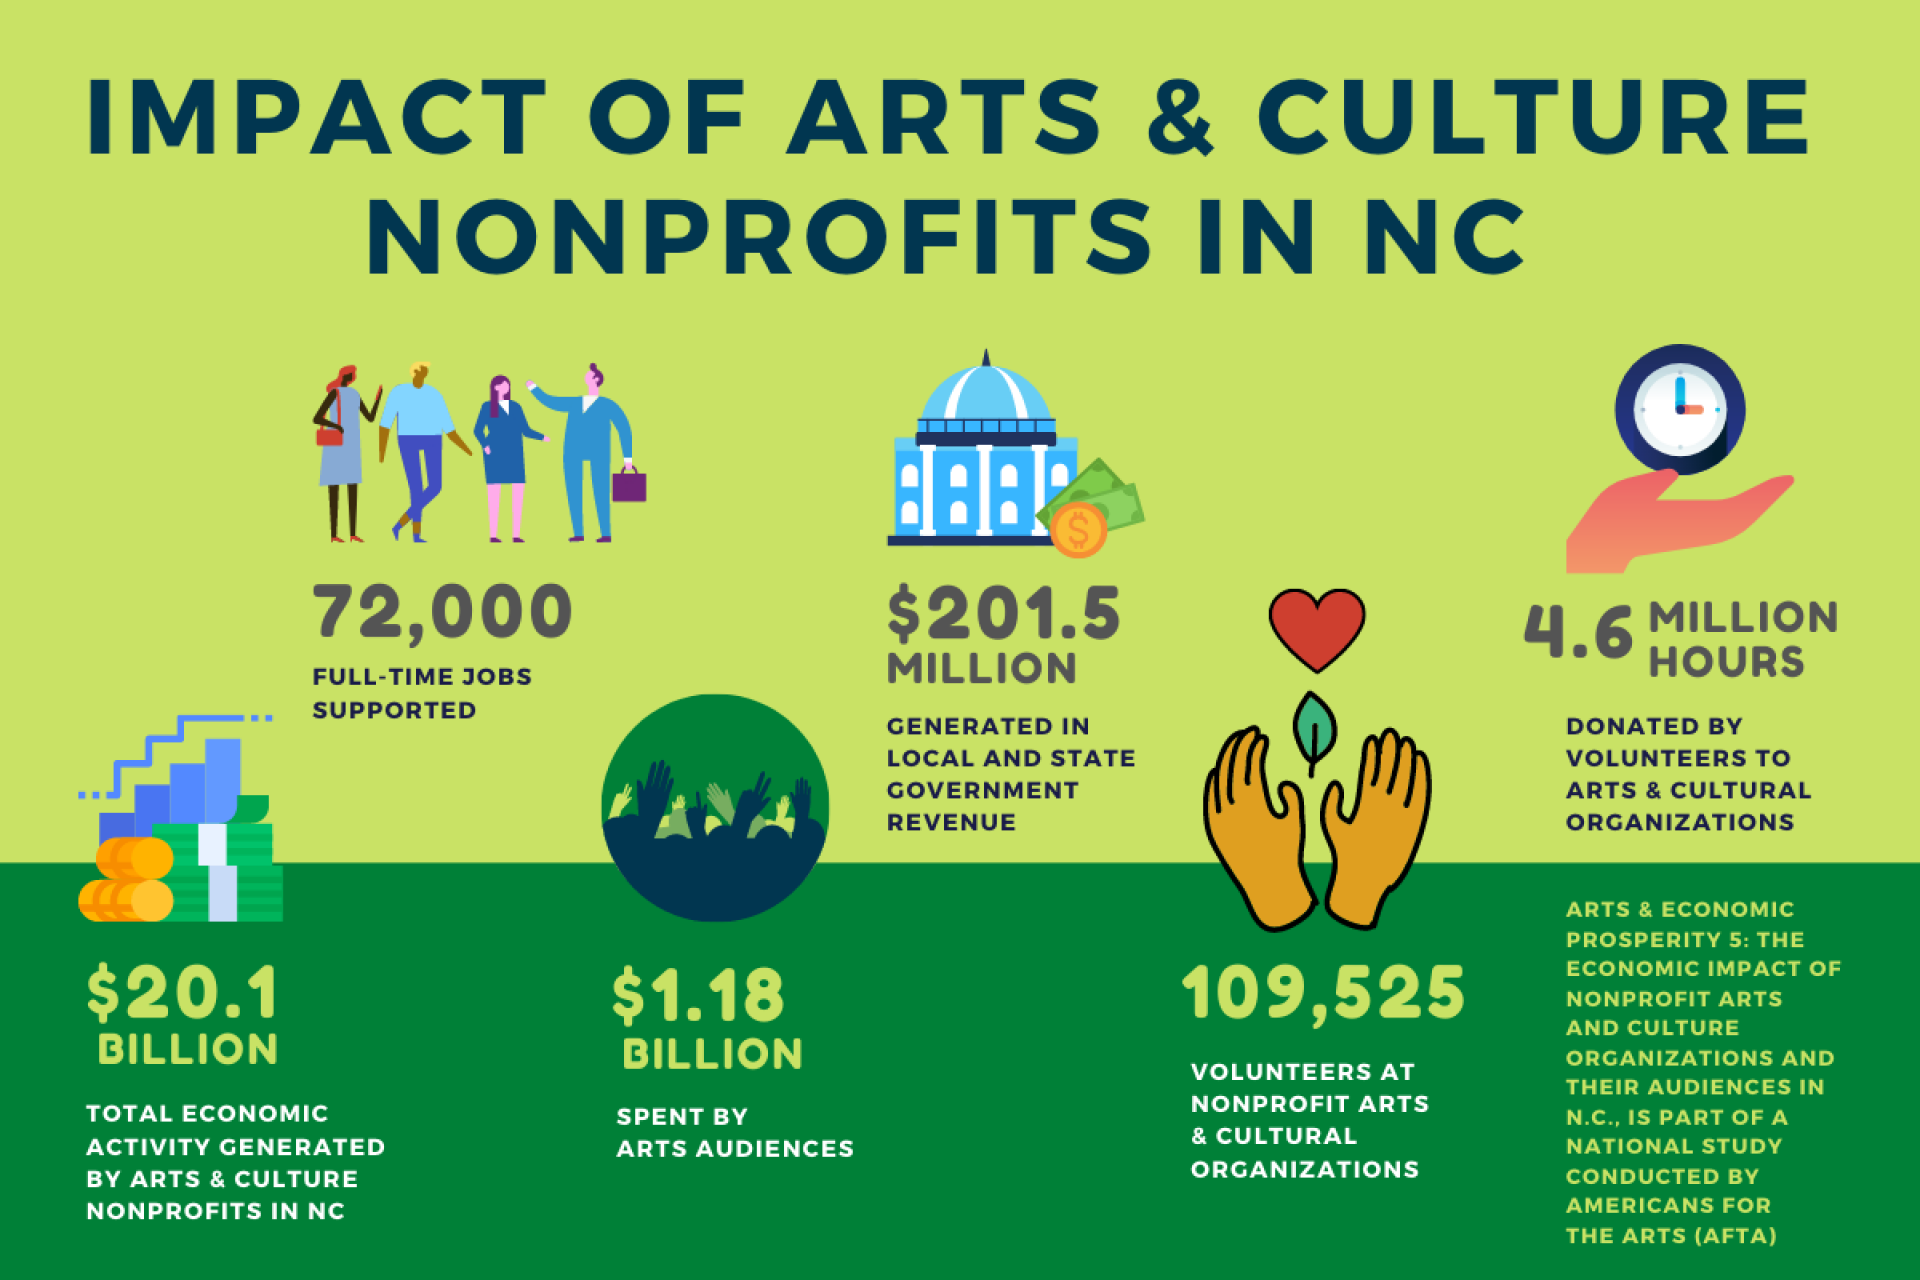 impact of arts & culture nonprofits in NC